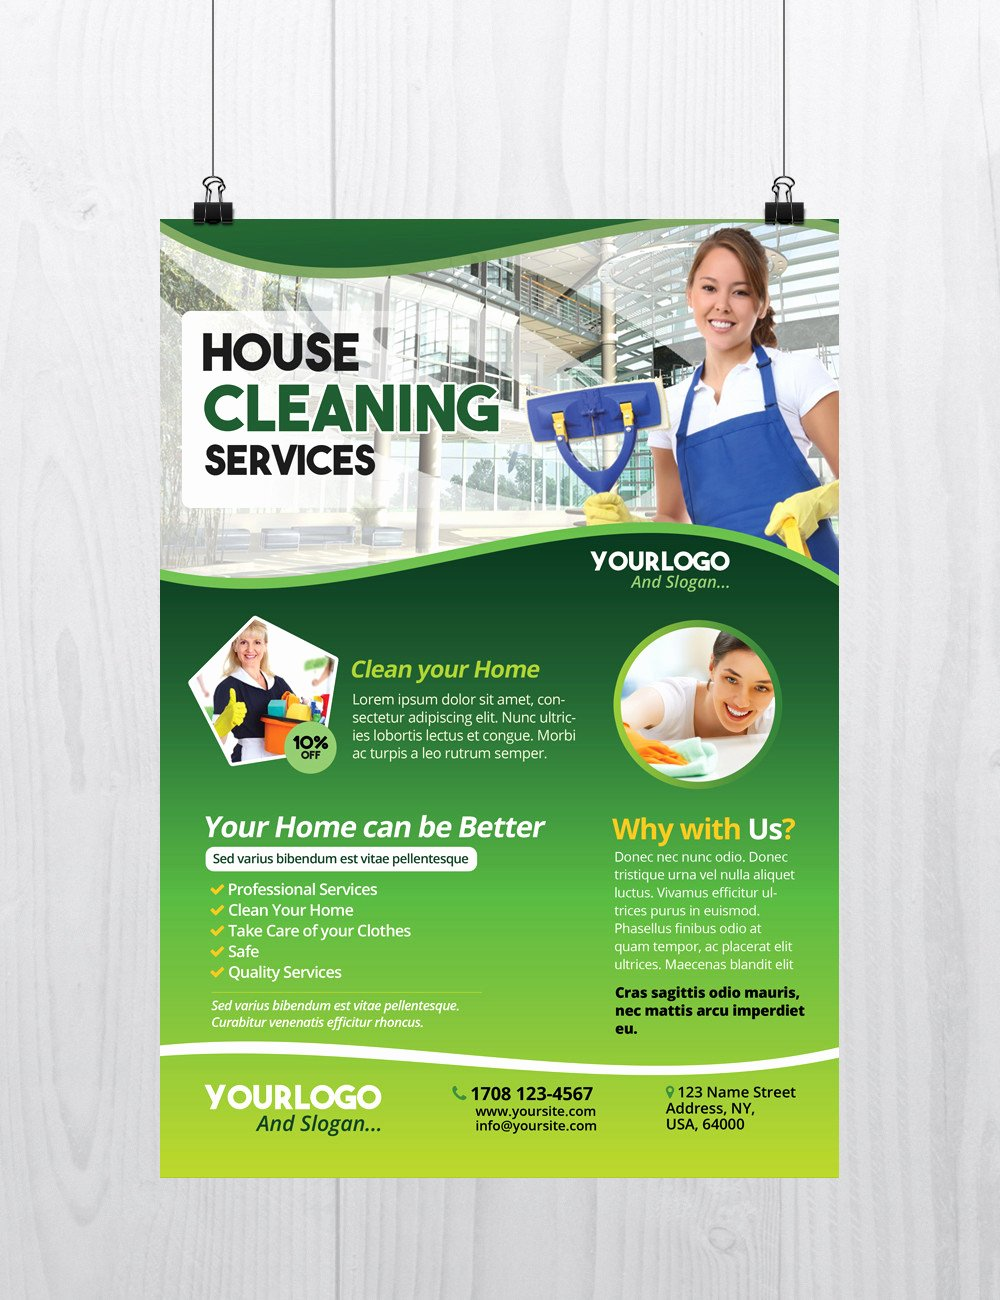 Cleaning Services Download Free Psd Flyer Template